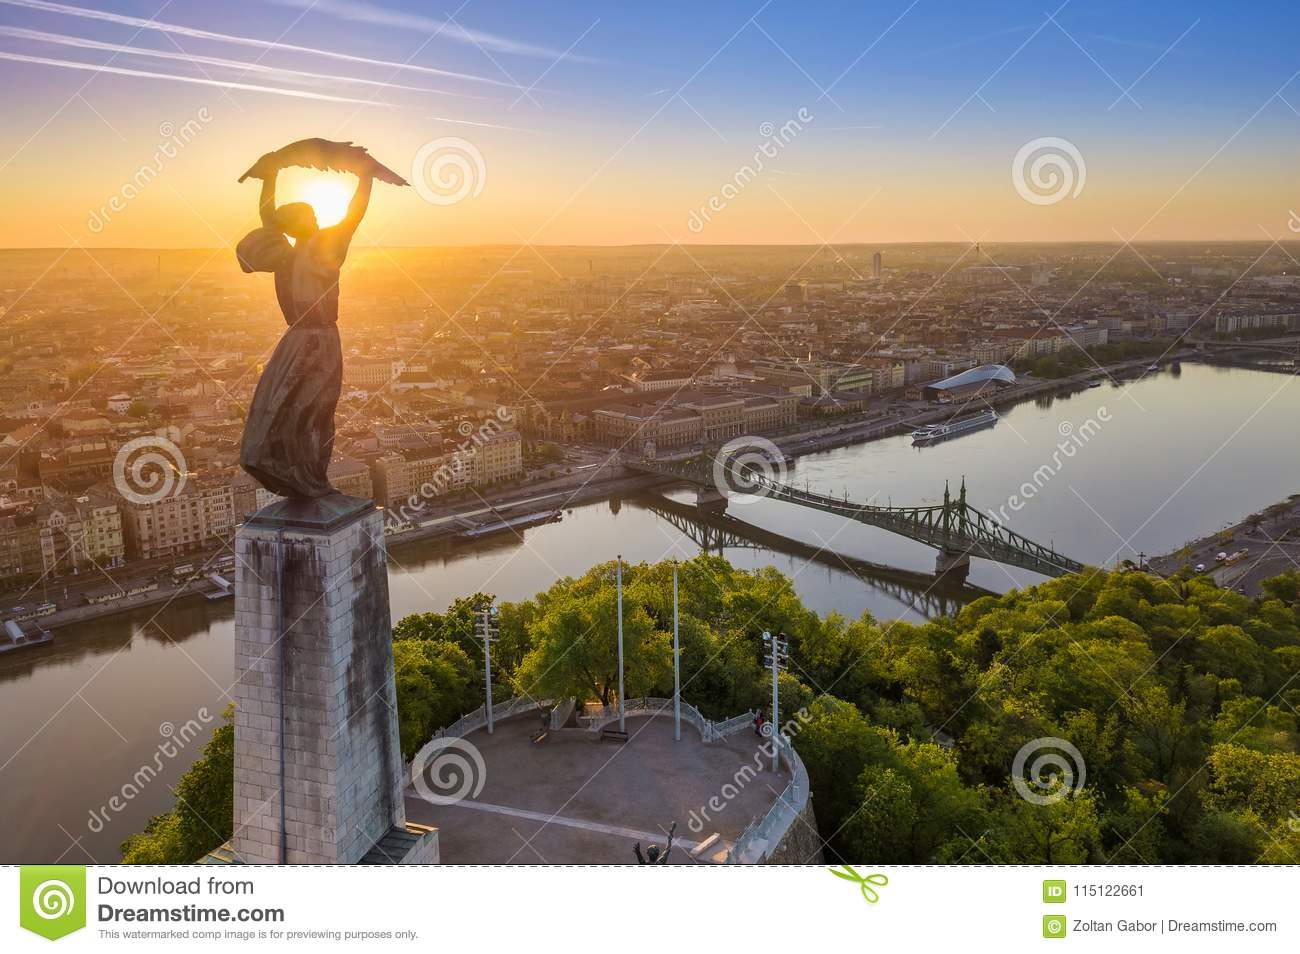 Budapest, Hungary - Aerial view of the beautiful Hungarian Statue of Liberty with Liberty Bridge and skyline of Budapest